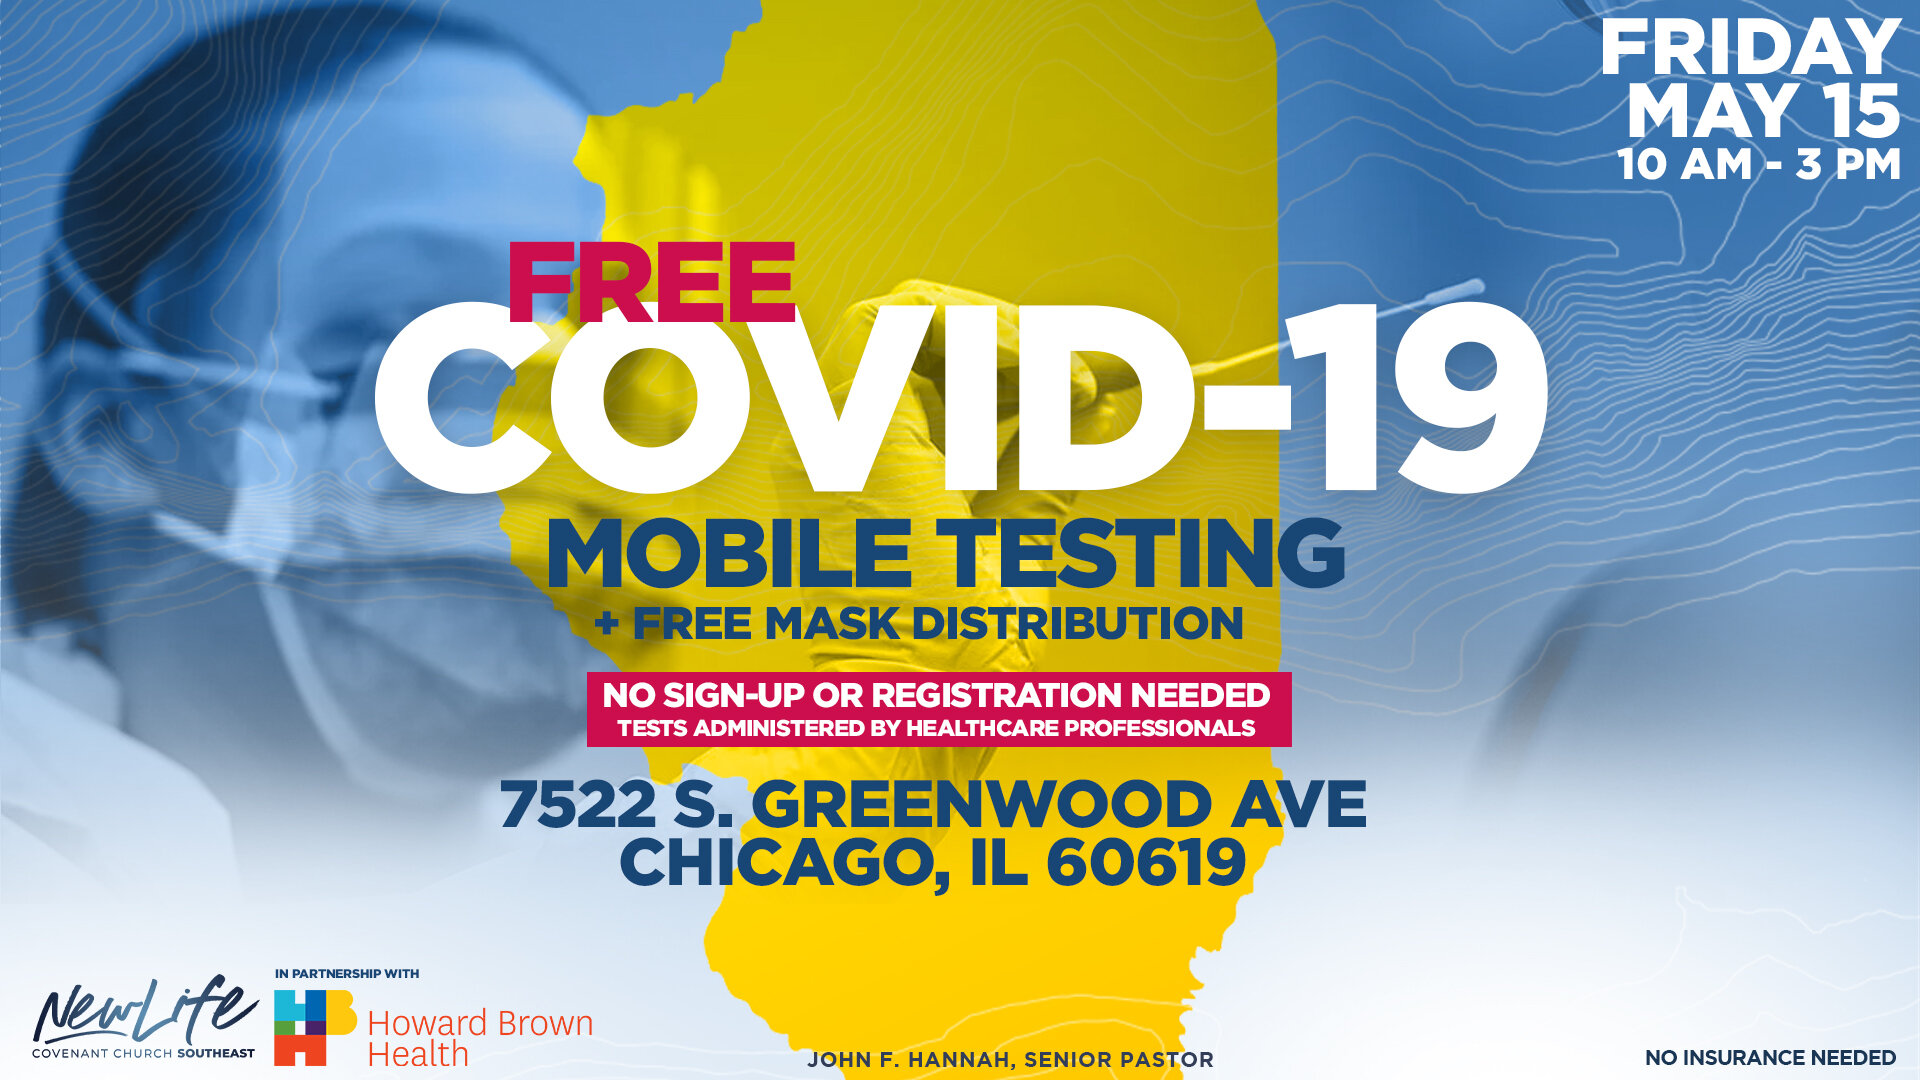 Free Covid 19 Testing Mask Distribution New Life Covenant Southeast